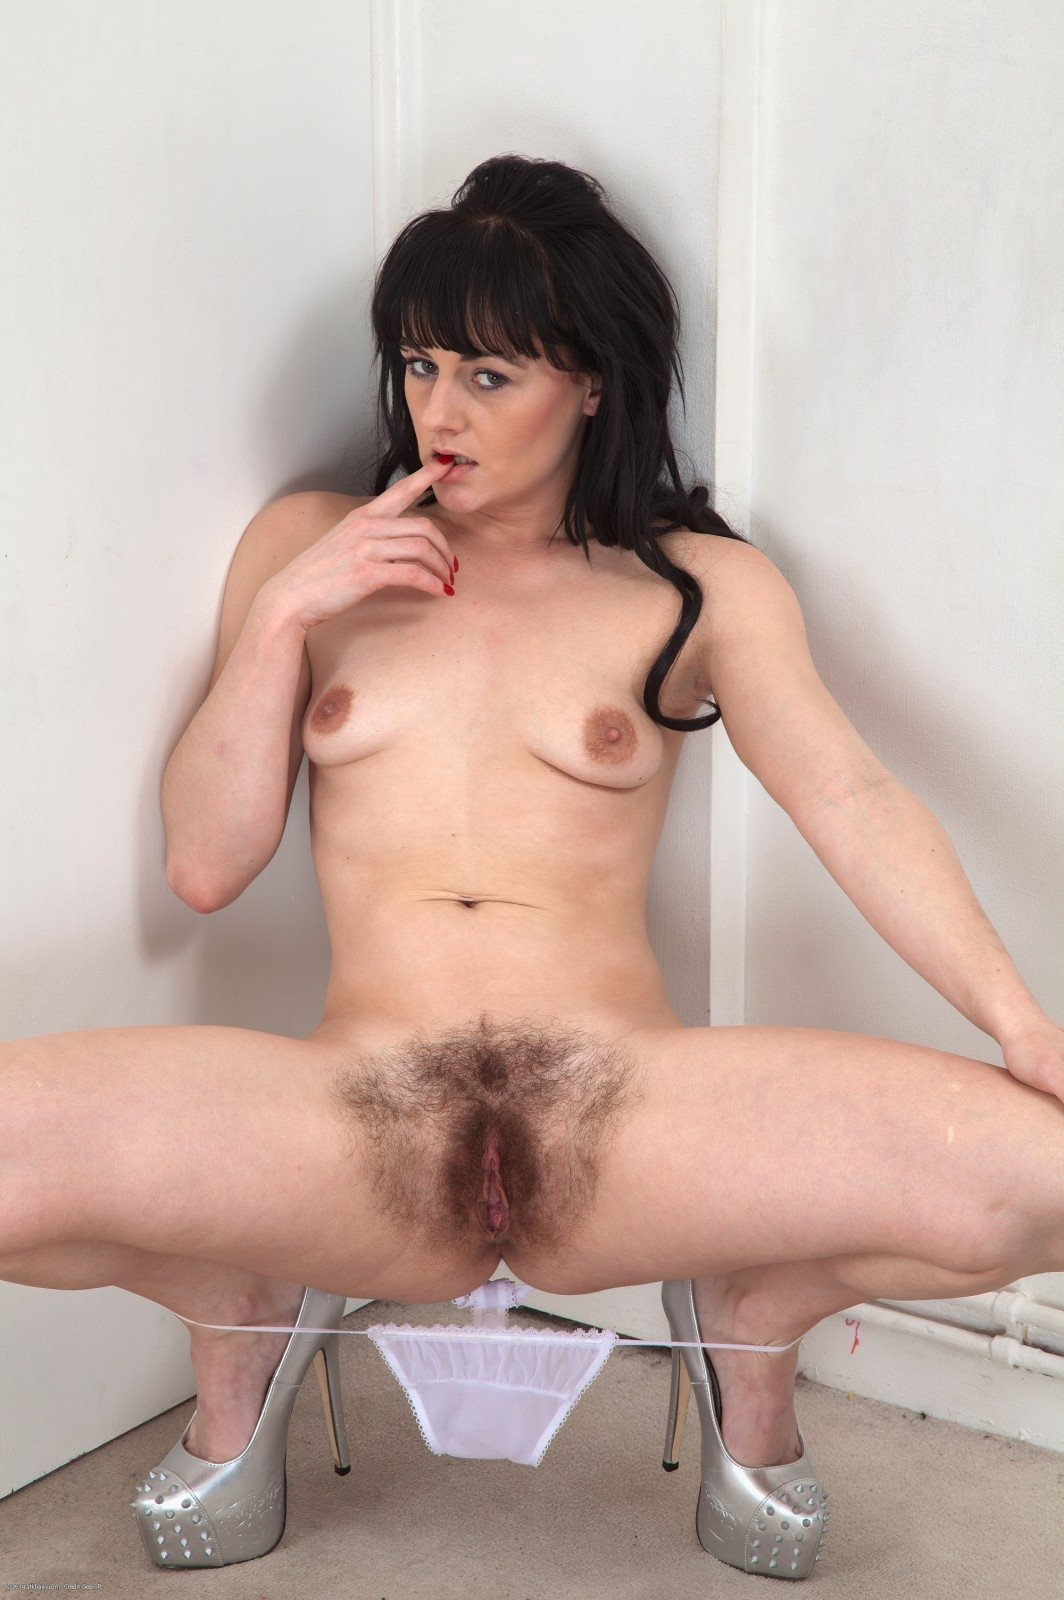 hairy busty anal